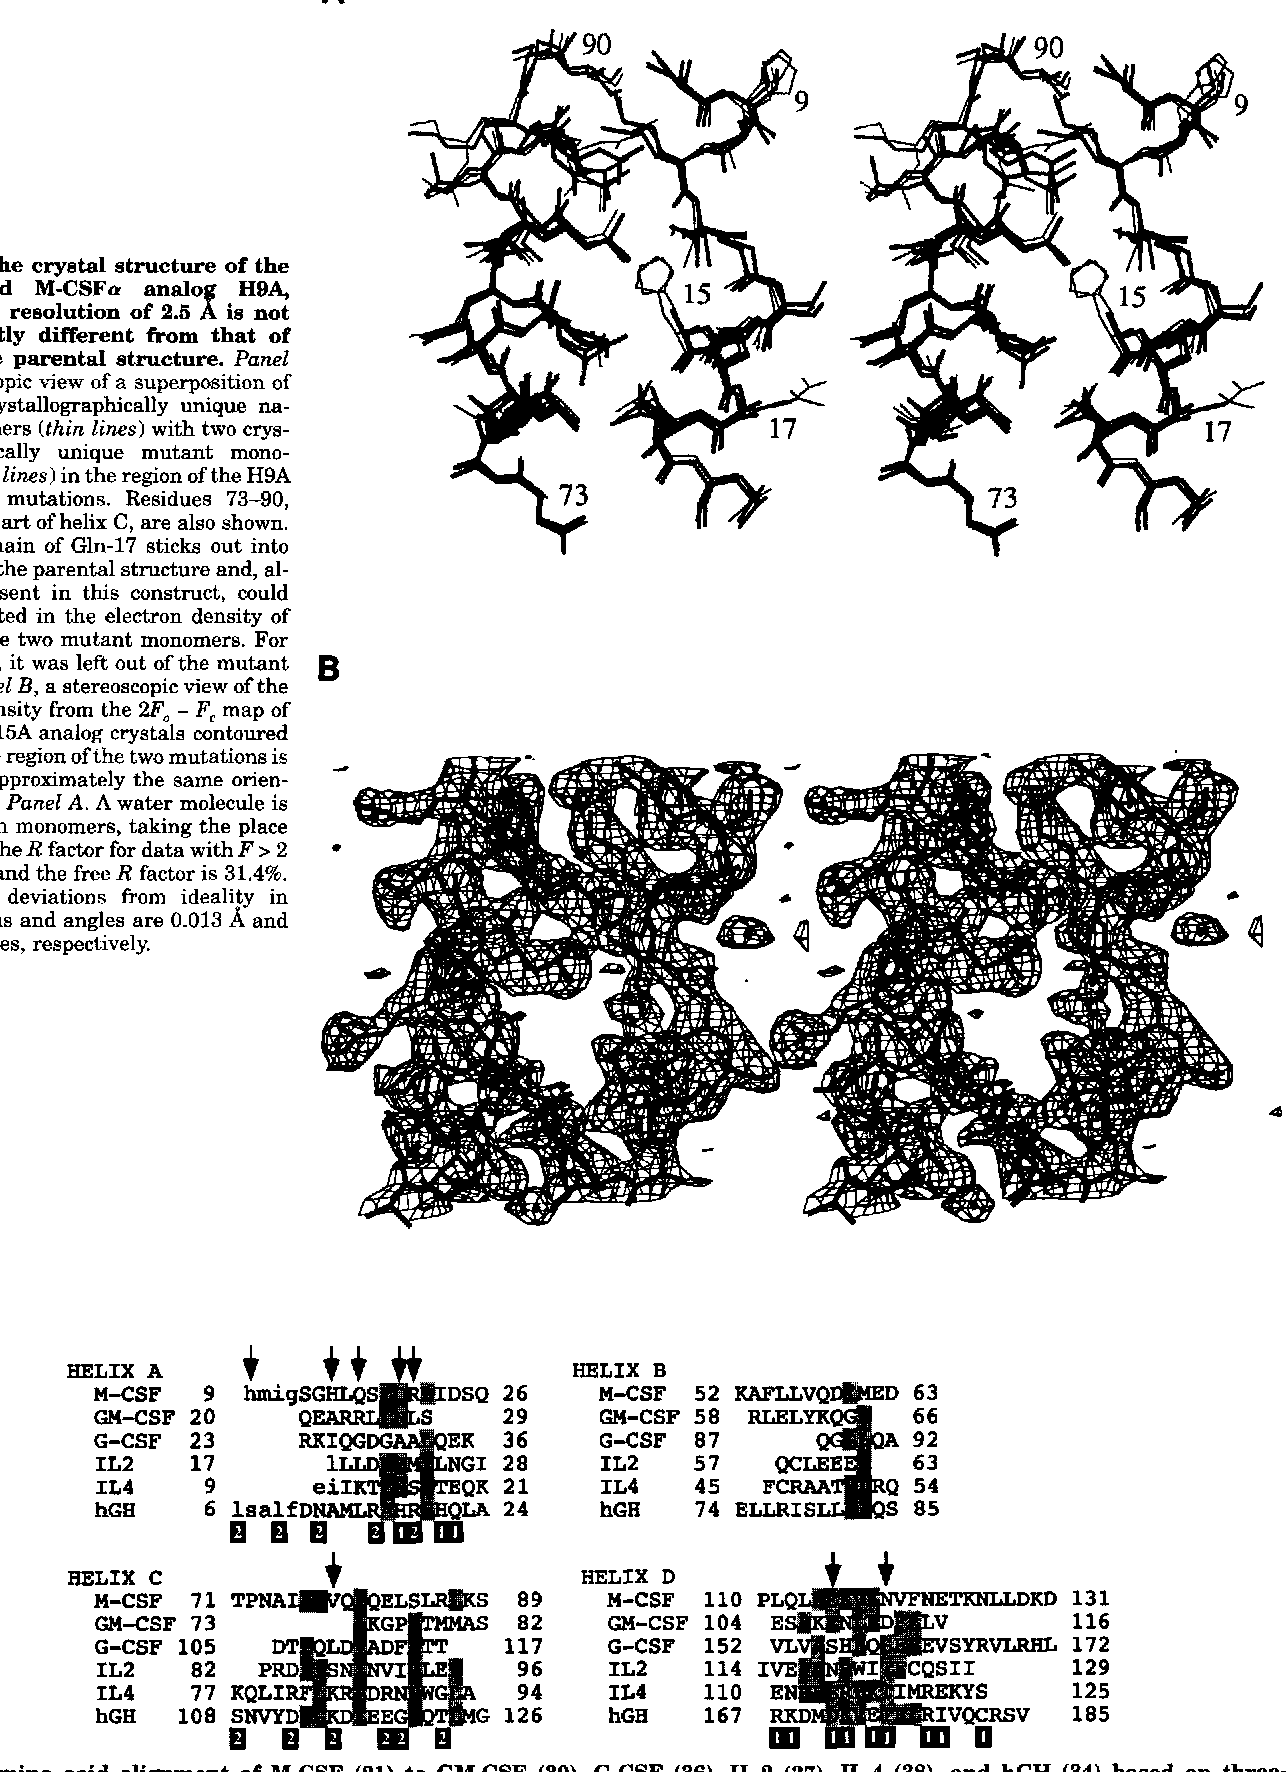 FIG. 3. The crystal structure of the inactivated M-CSFo analo H9A, H16A at a resolution of 2.6 .f is not significantly different from that of the native parental structure. Panel A, stereoscopic view of a superposition of the two crystallographically unique native monomers (thin lines) with two crystallographically unique mutant monomers (thick lines) in the region of the H9A and H15A mutations. Residues 73-90, which are part of helix C, are also shown. The side chain of Gln-17 sticks out into solution in the parental structure and, although present in this construct, could not be located in the electron density of either of the two mutant monomers. For this reason, it was left out of the mutant B model. Panel B, a stereoscopic view of the